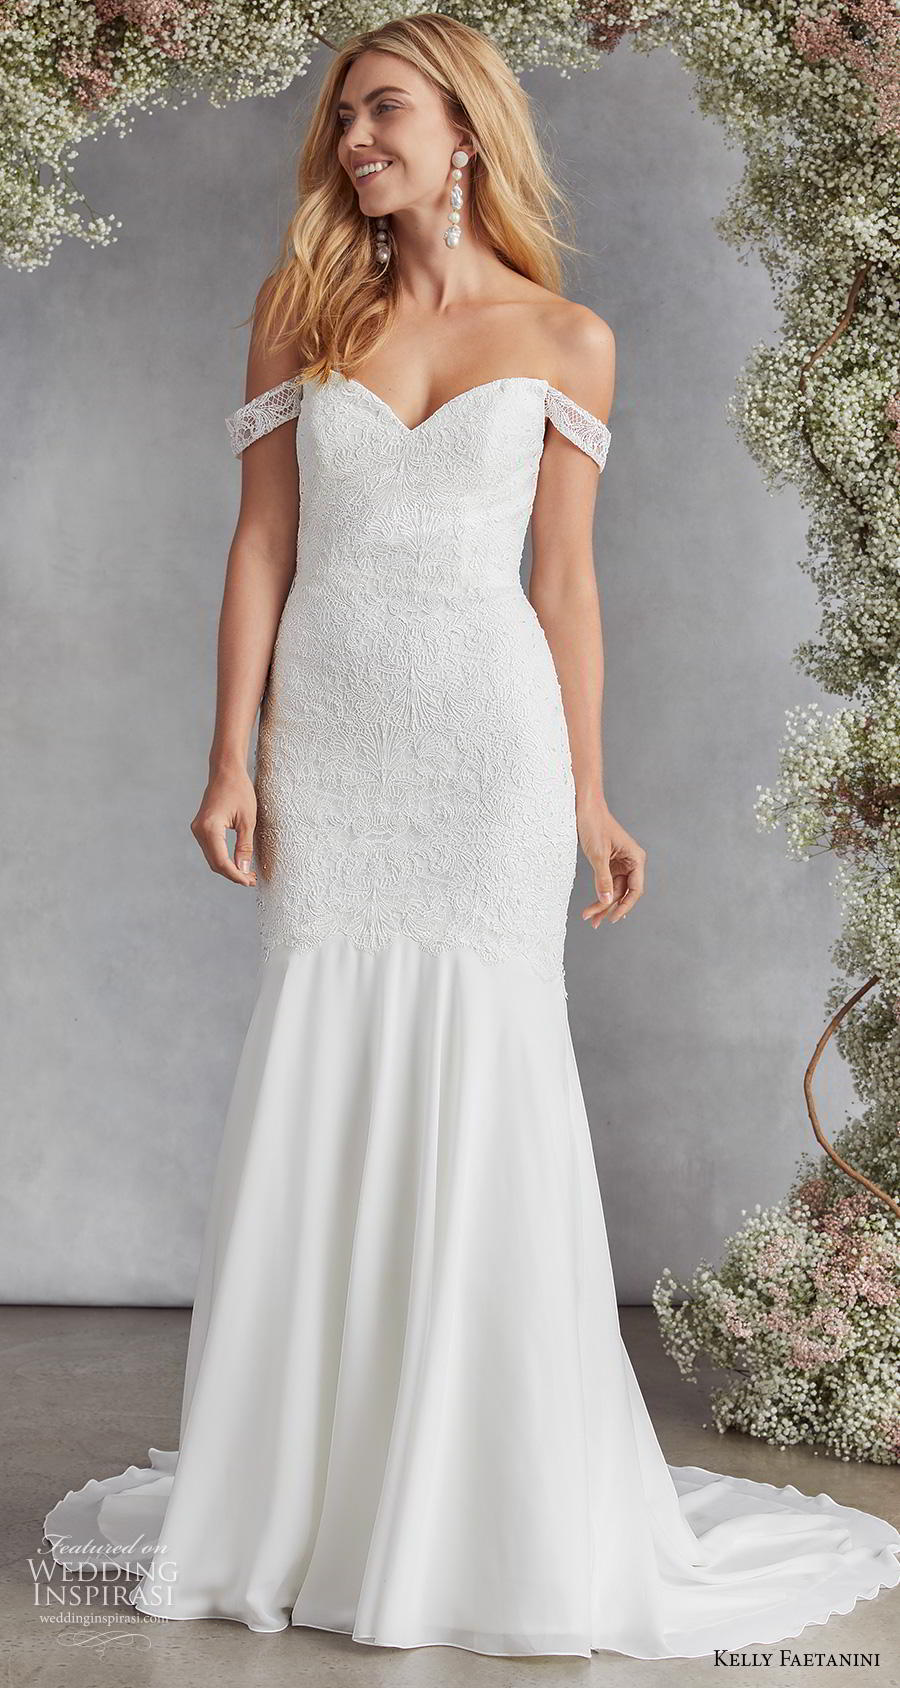 kelly faetanini fall 2020 bridal off the shoulder sweetheart neckline heavily embellished bodice romantic mermaid wedding dress mid back medium train (13) mv